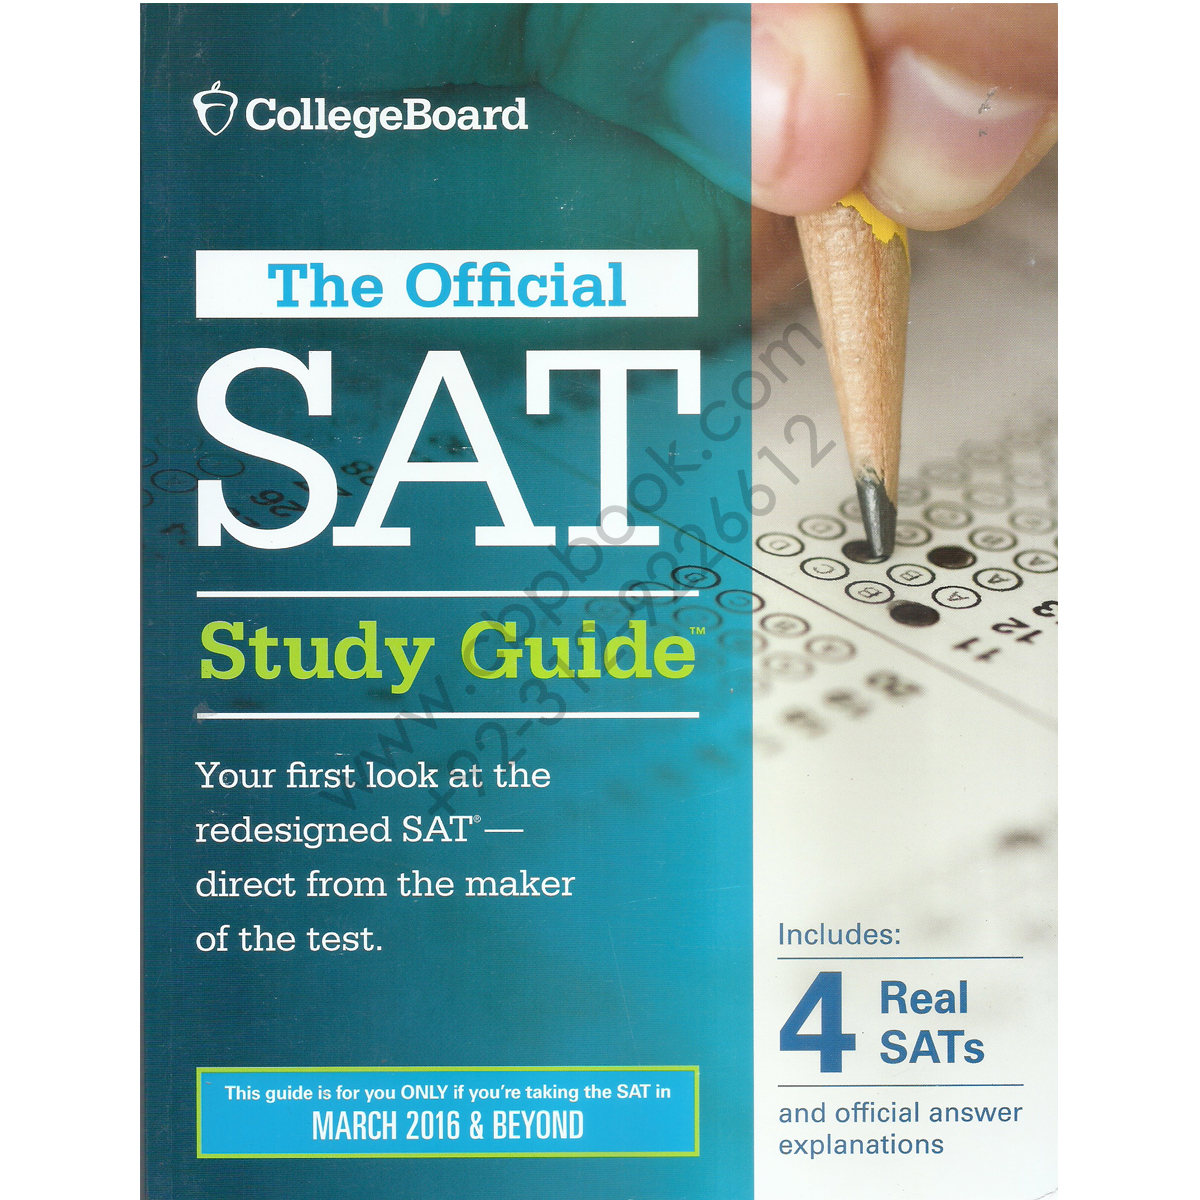 Best SAT Prep Books and Study Guides of 2019 - GreGuru